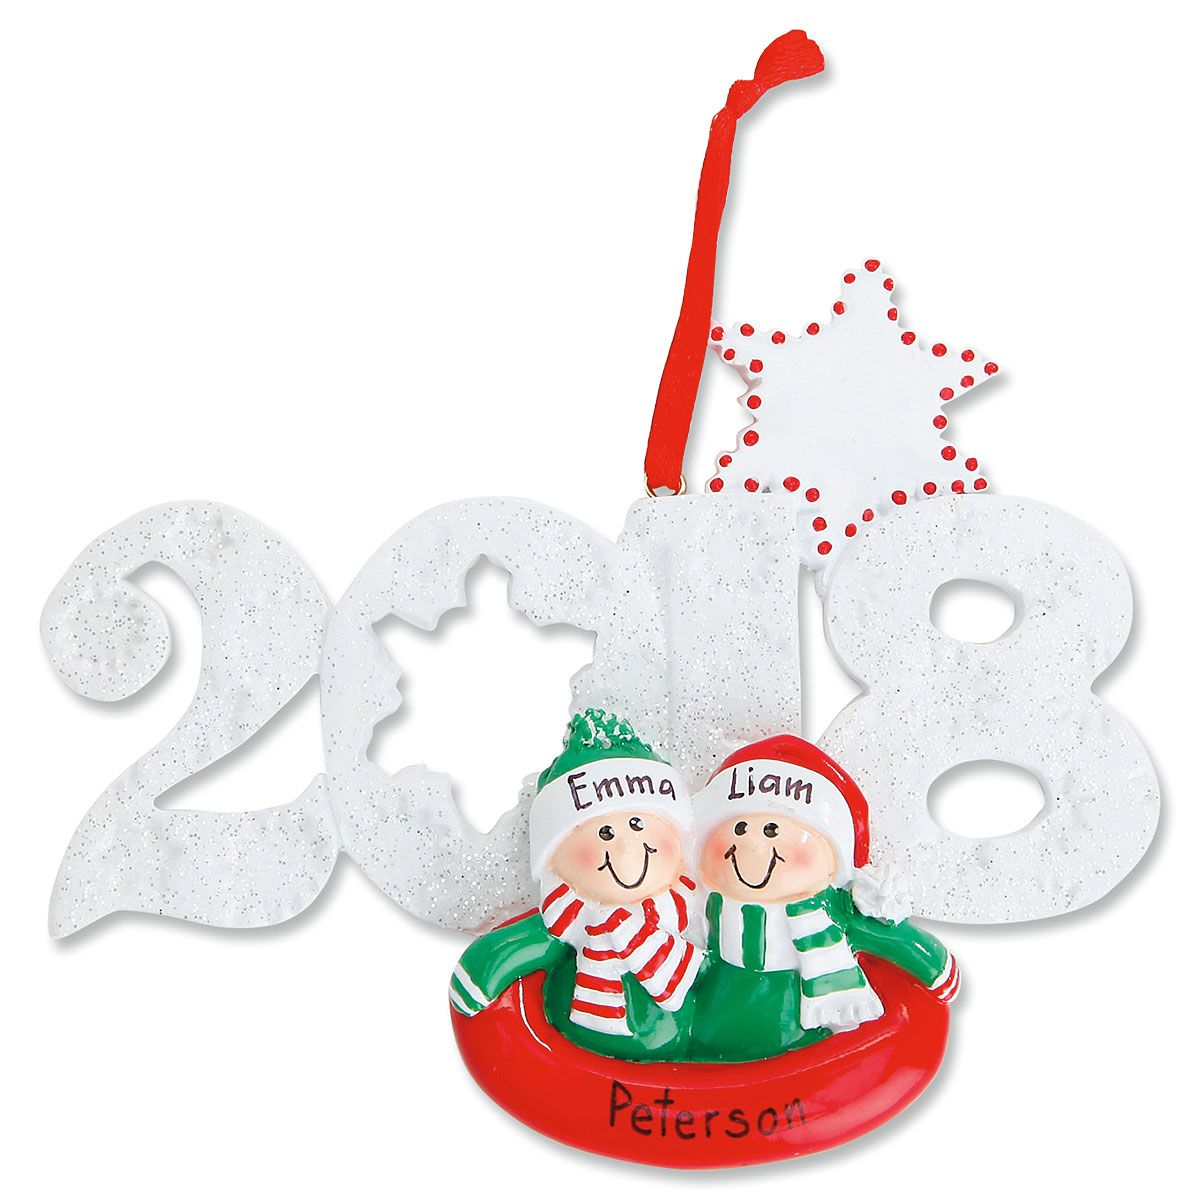 2018 Sledding Personalized Christmas Ornament | Colorful Images